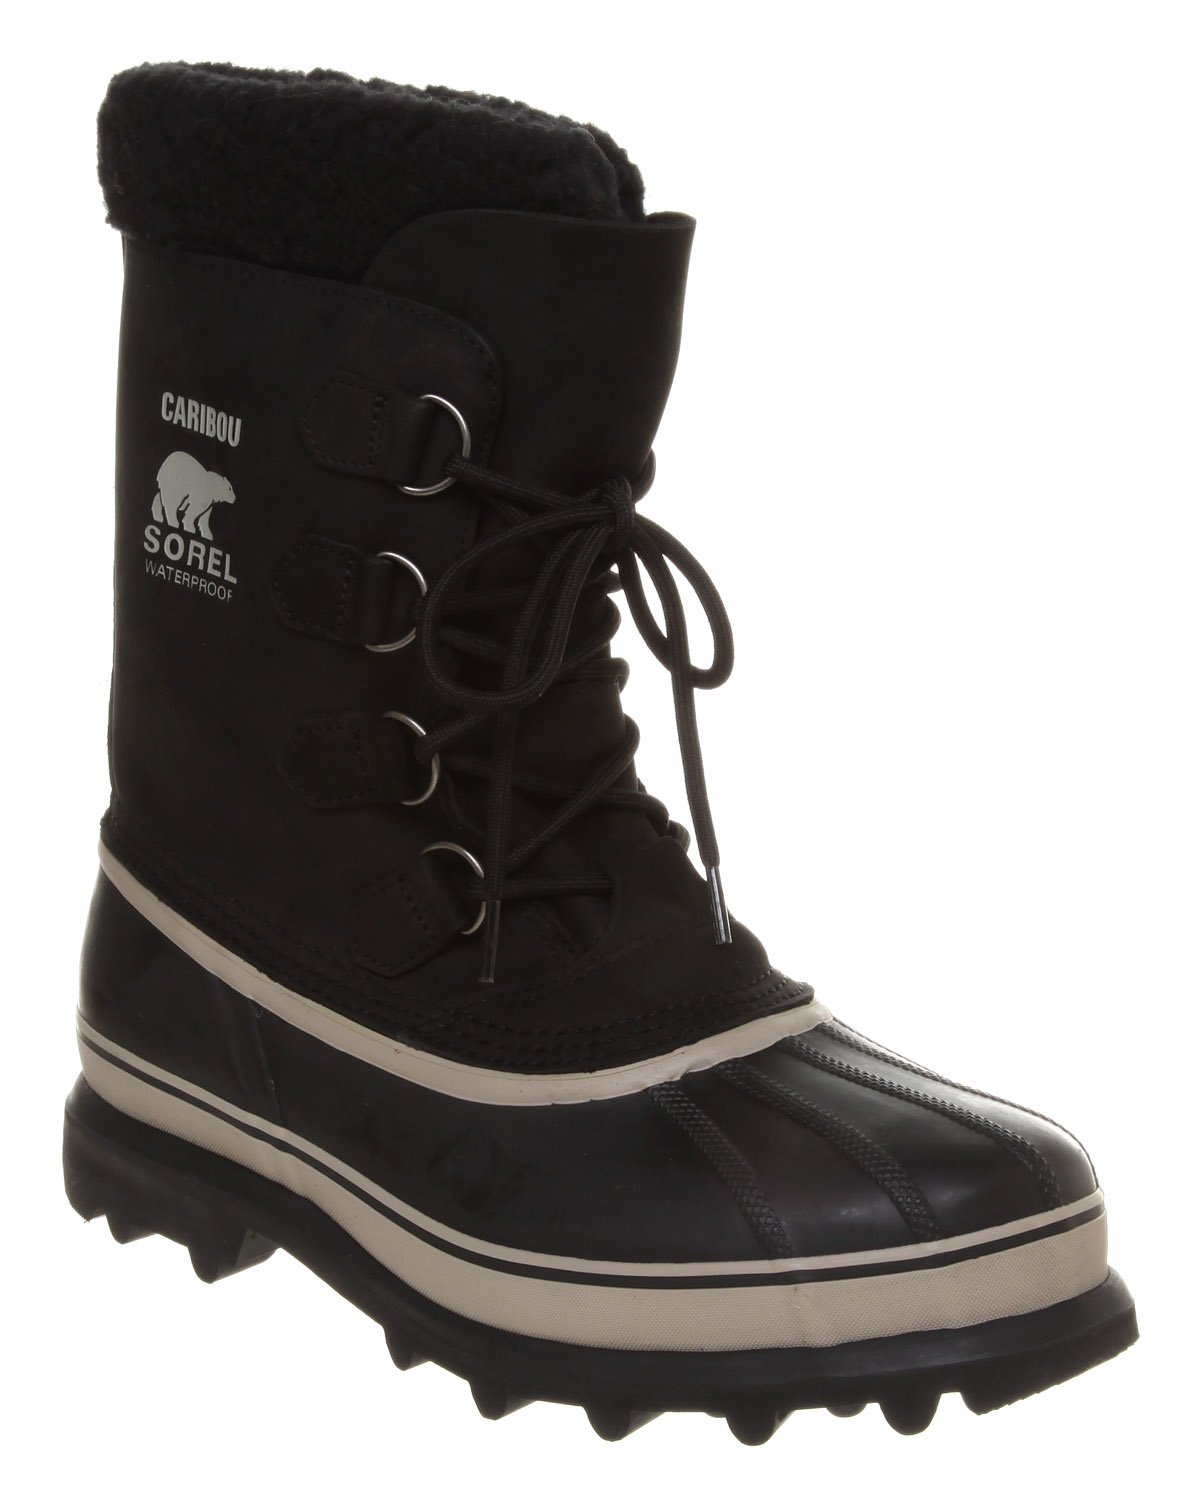 Mens-Sorel-Caribou-Nubuck-High-Lace-Black-Nubuck-Boots